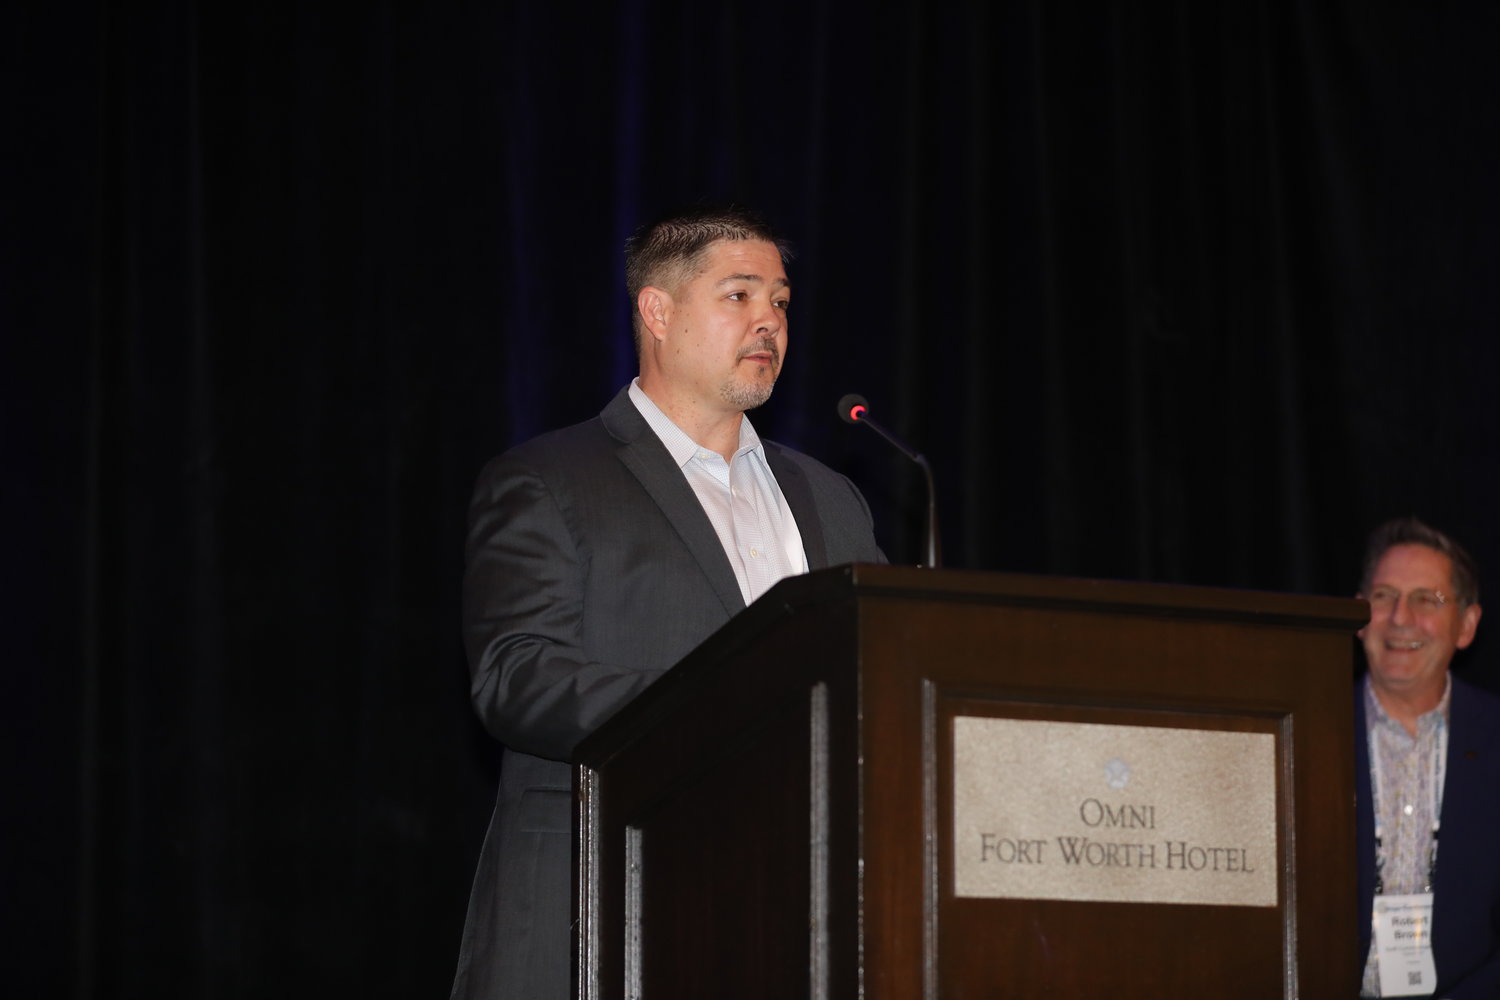 Ryan Mote, publisher of the Fort Worth Star-Telegram, welcome 2020 Mega-Conference attendees to Fort Worth! (Photo by Bob Booth)